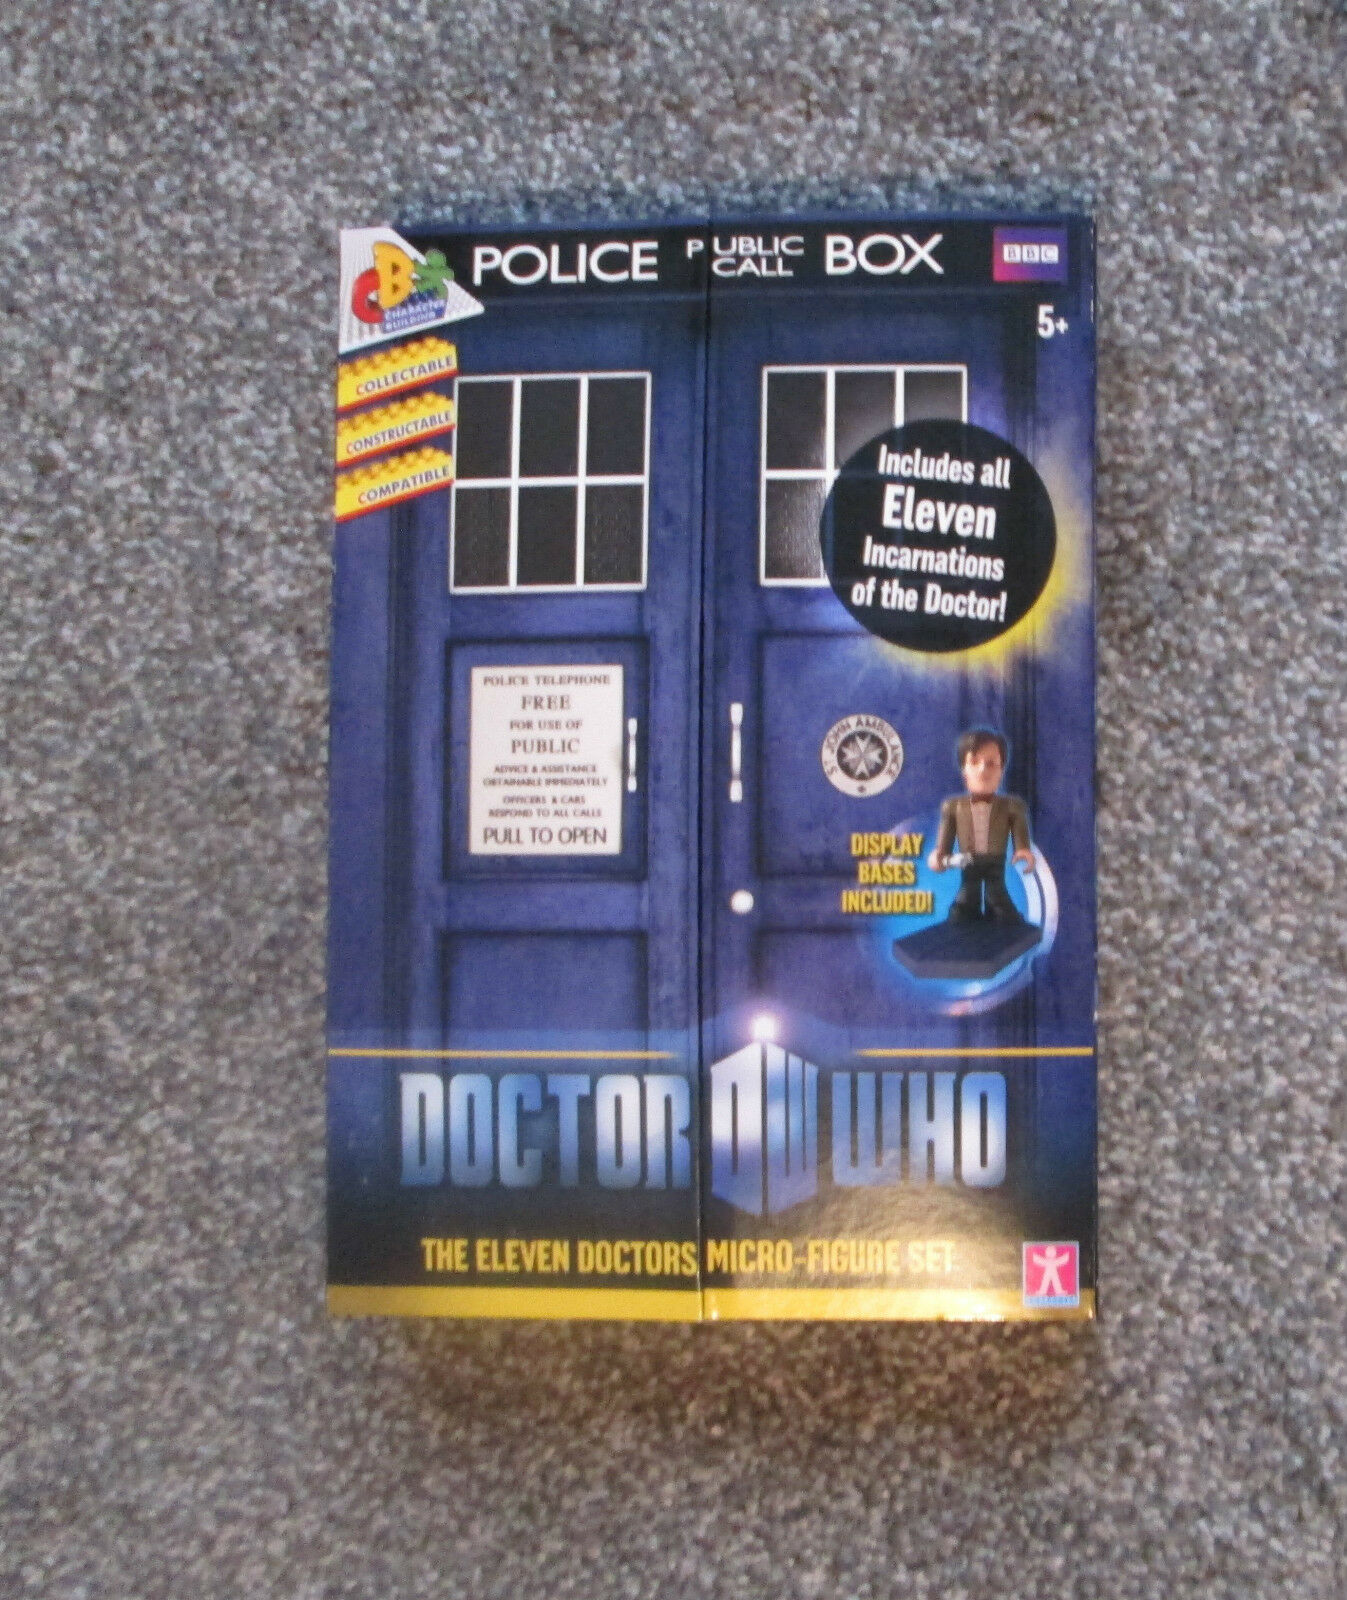 Doctor Who Character Eleven Doctors Micro-figure set